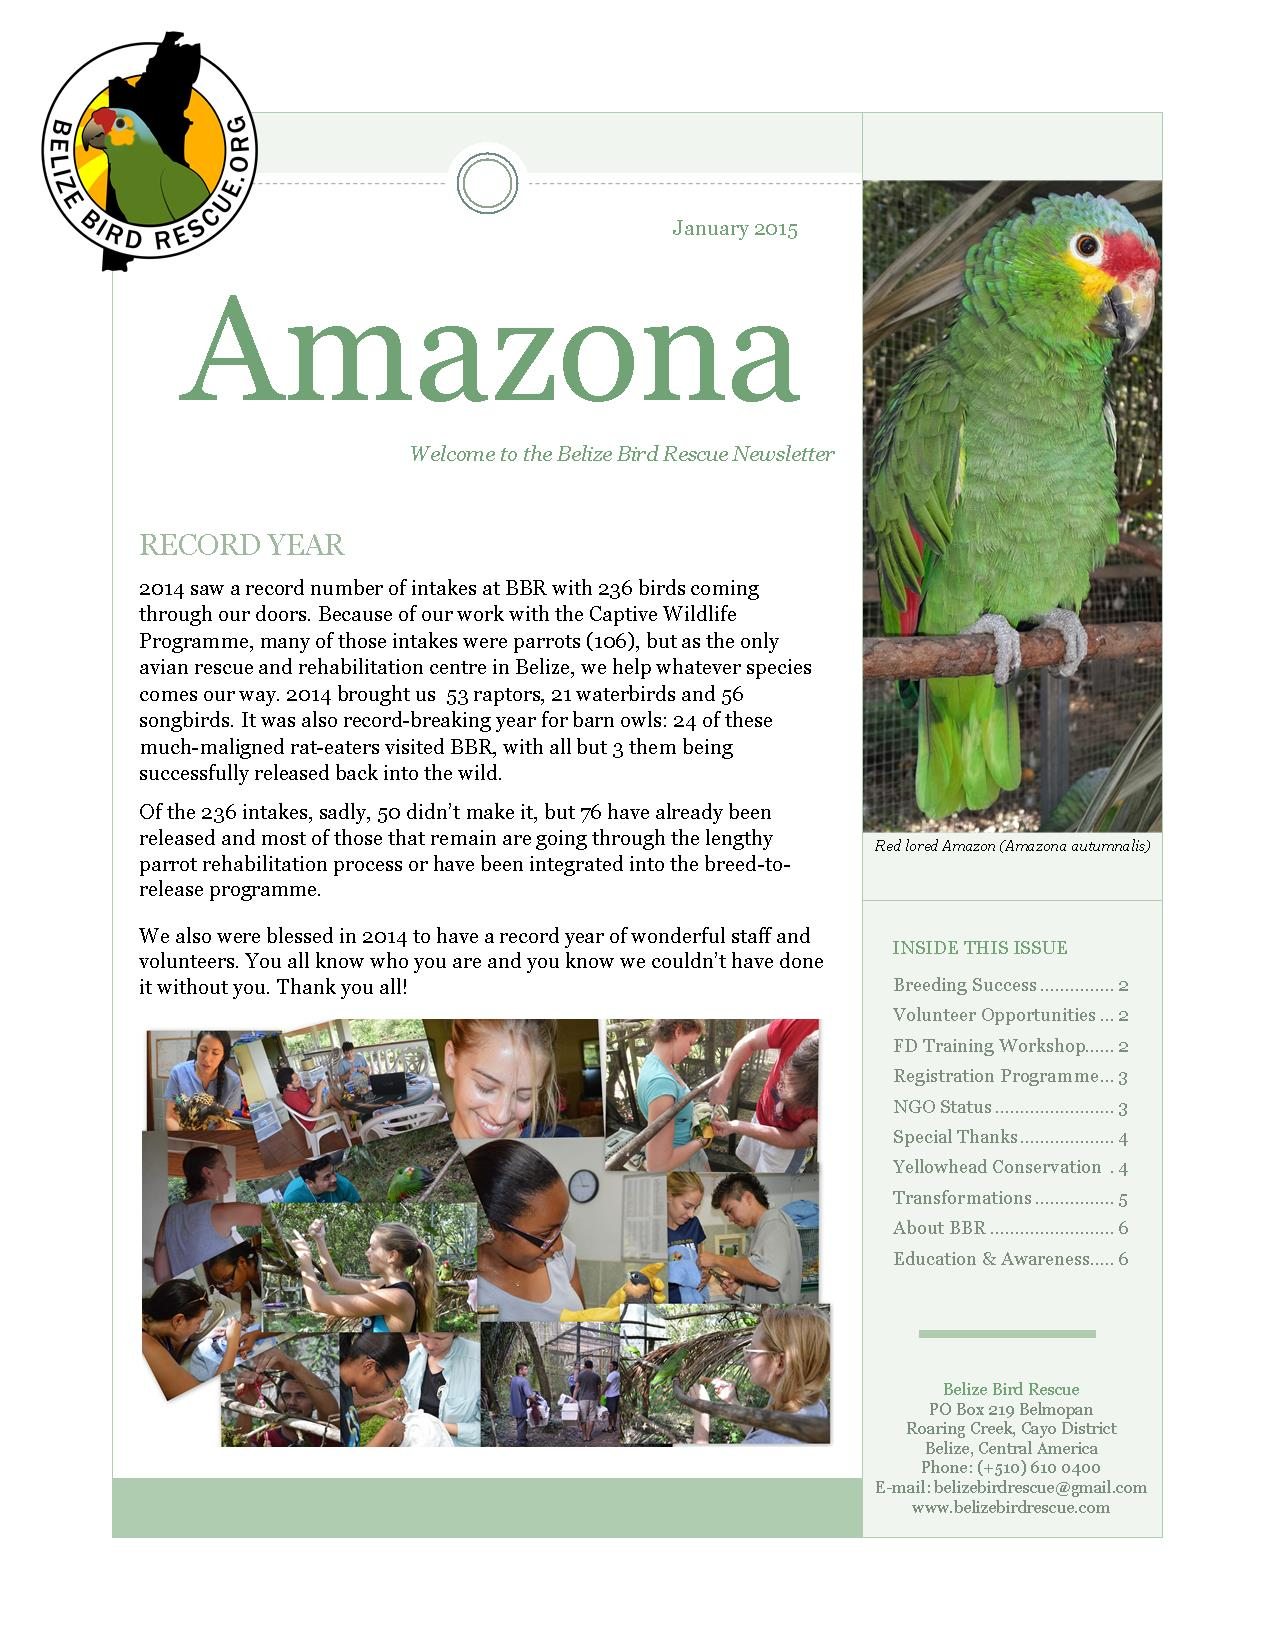 Belize Bird Rescue The Cayo District, First newsletter of 2015 | Belize Bird Rescue